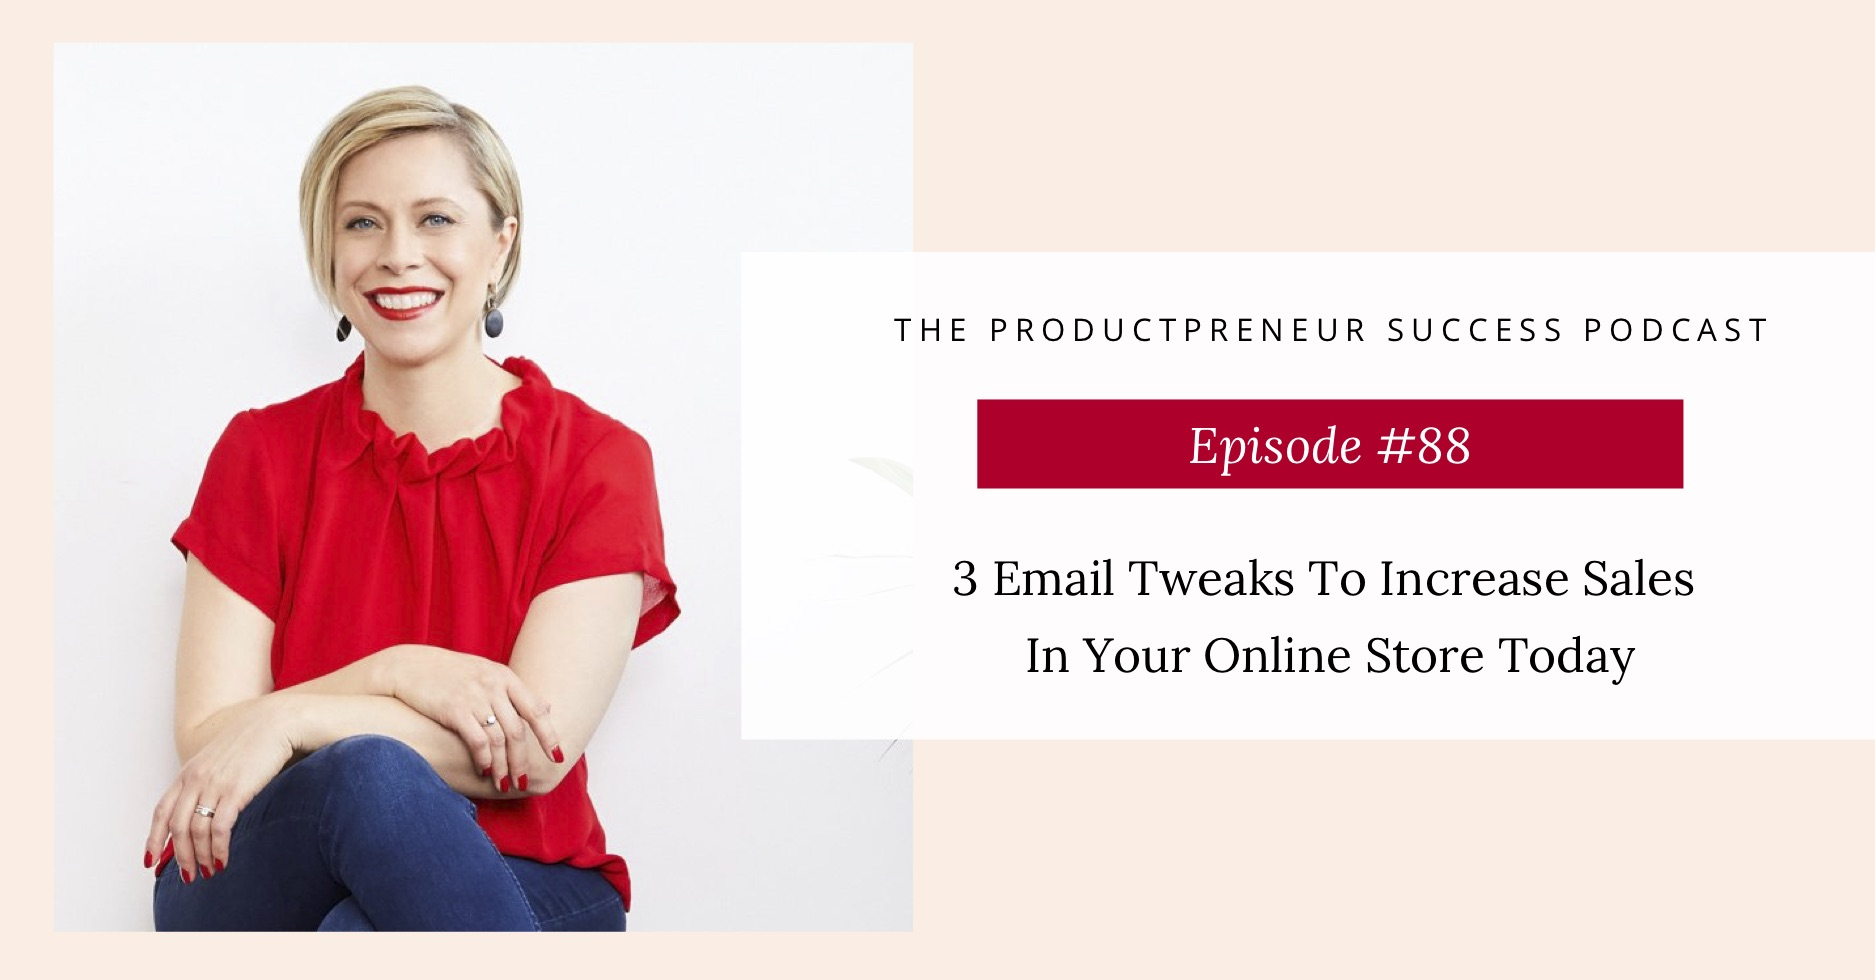 Potcast title 3 Email Tweaks to Increase Sales In Your Online Store Today